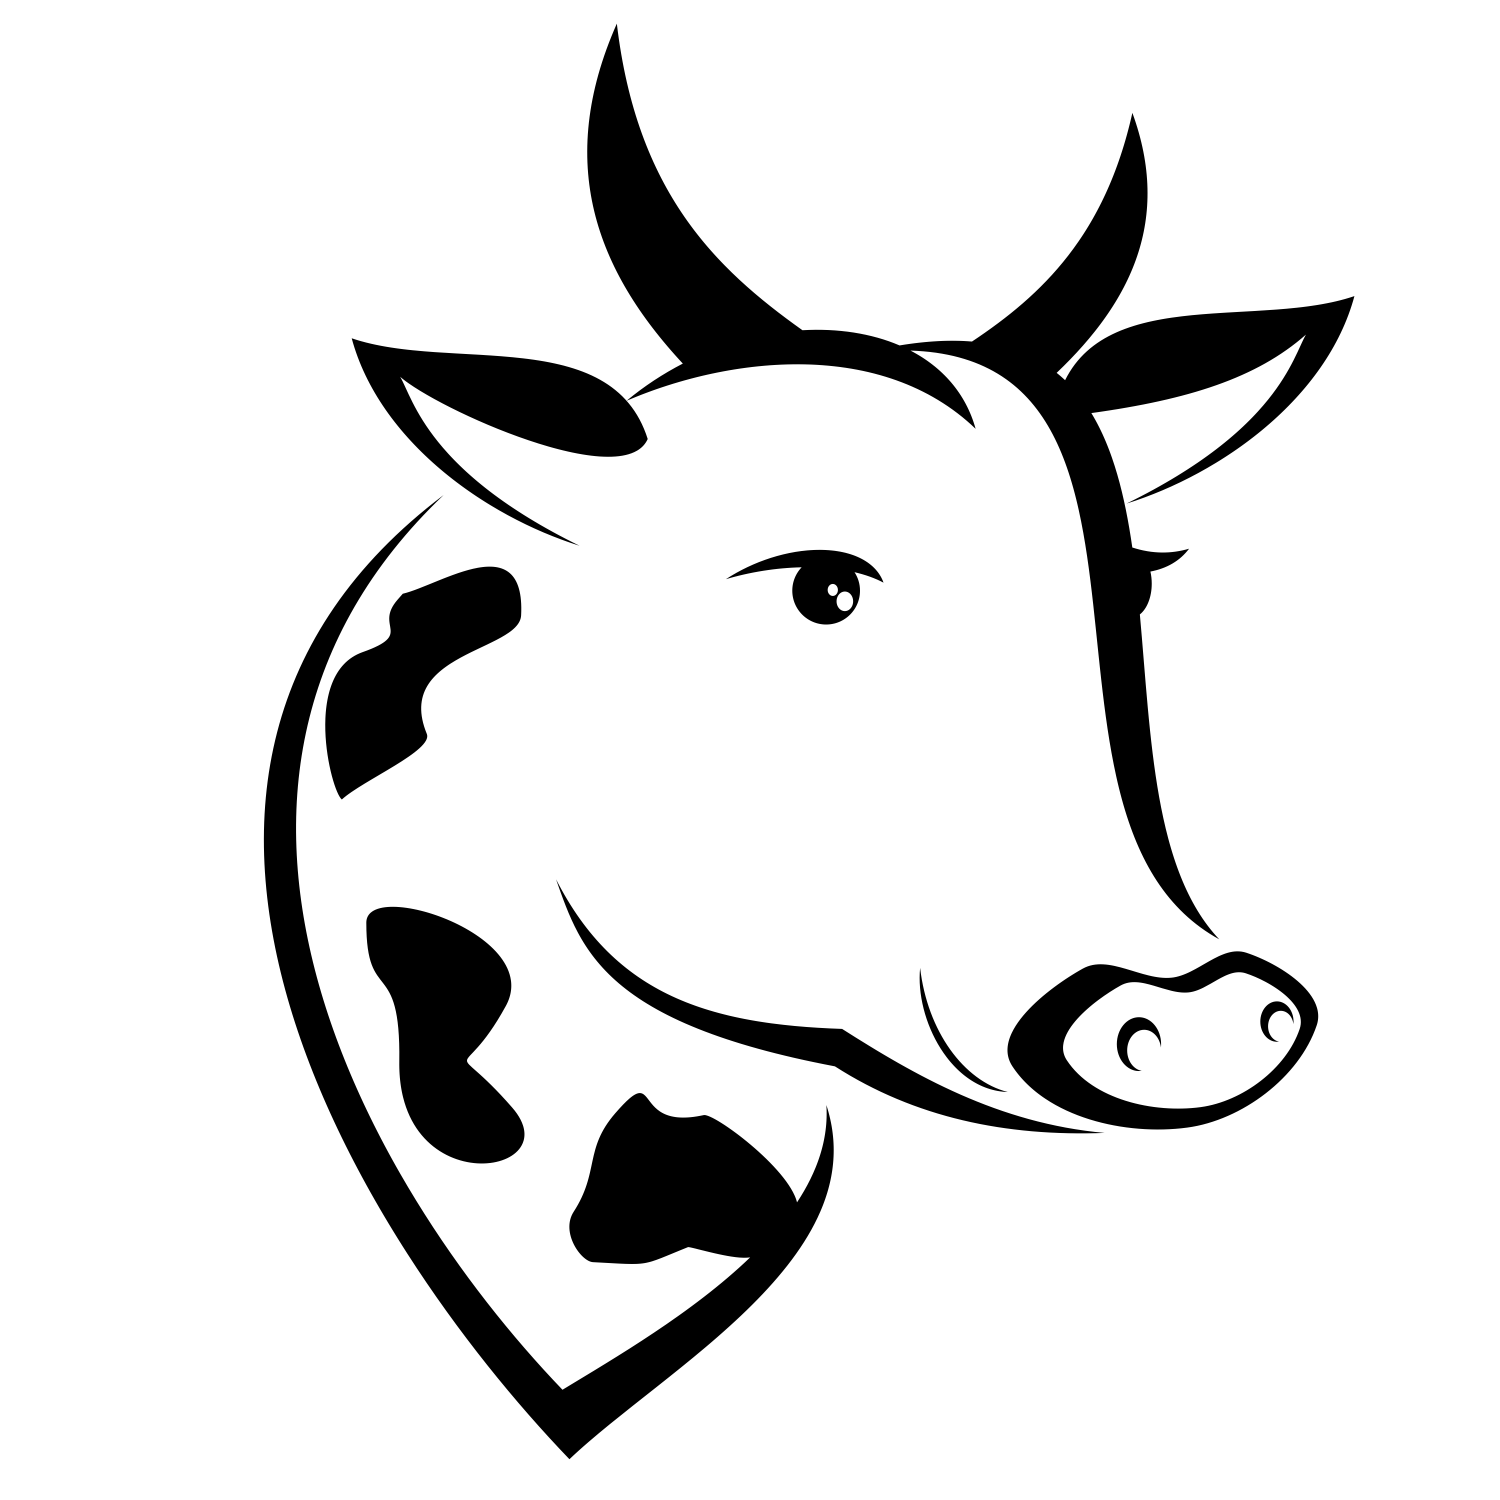 1500x1500 Png Cow Head Transparent Cow Head.png Images. Pluspng